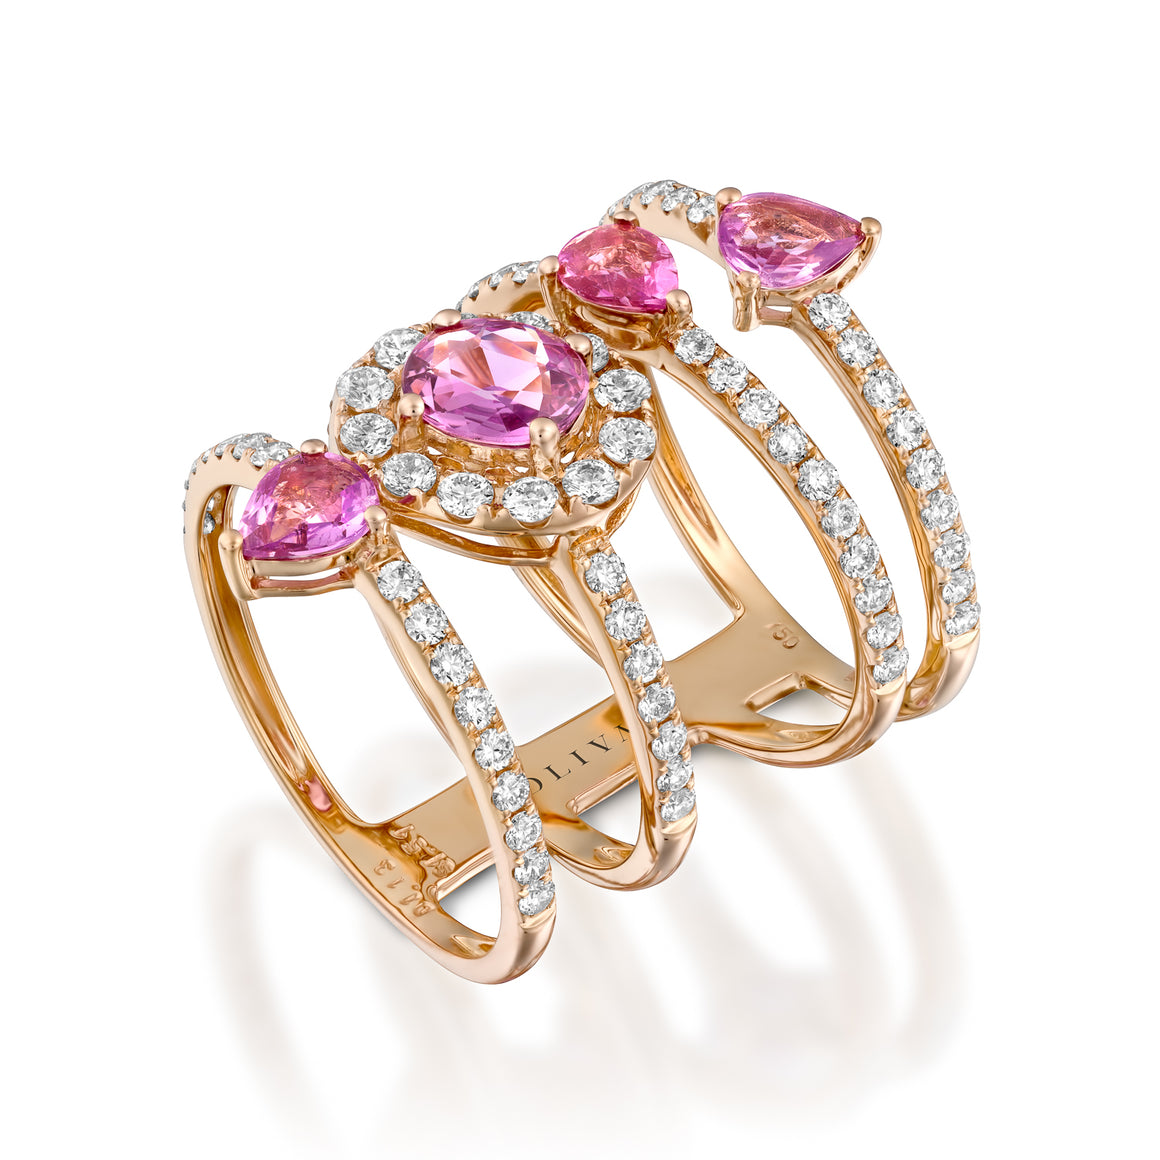 RNT13763-Pink Sapphire diamond multi Layered Ring ring in 18k Red gold